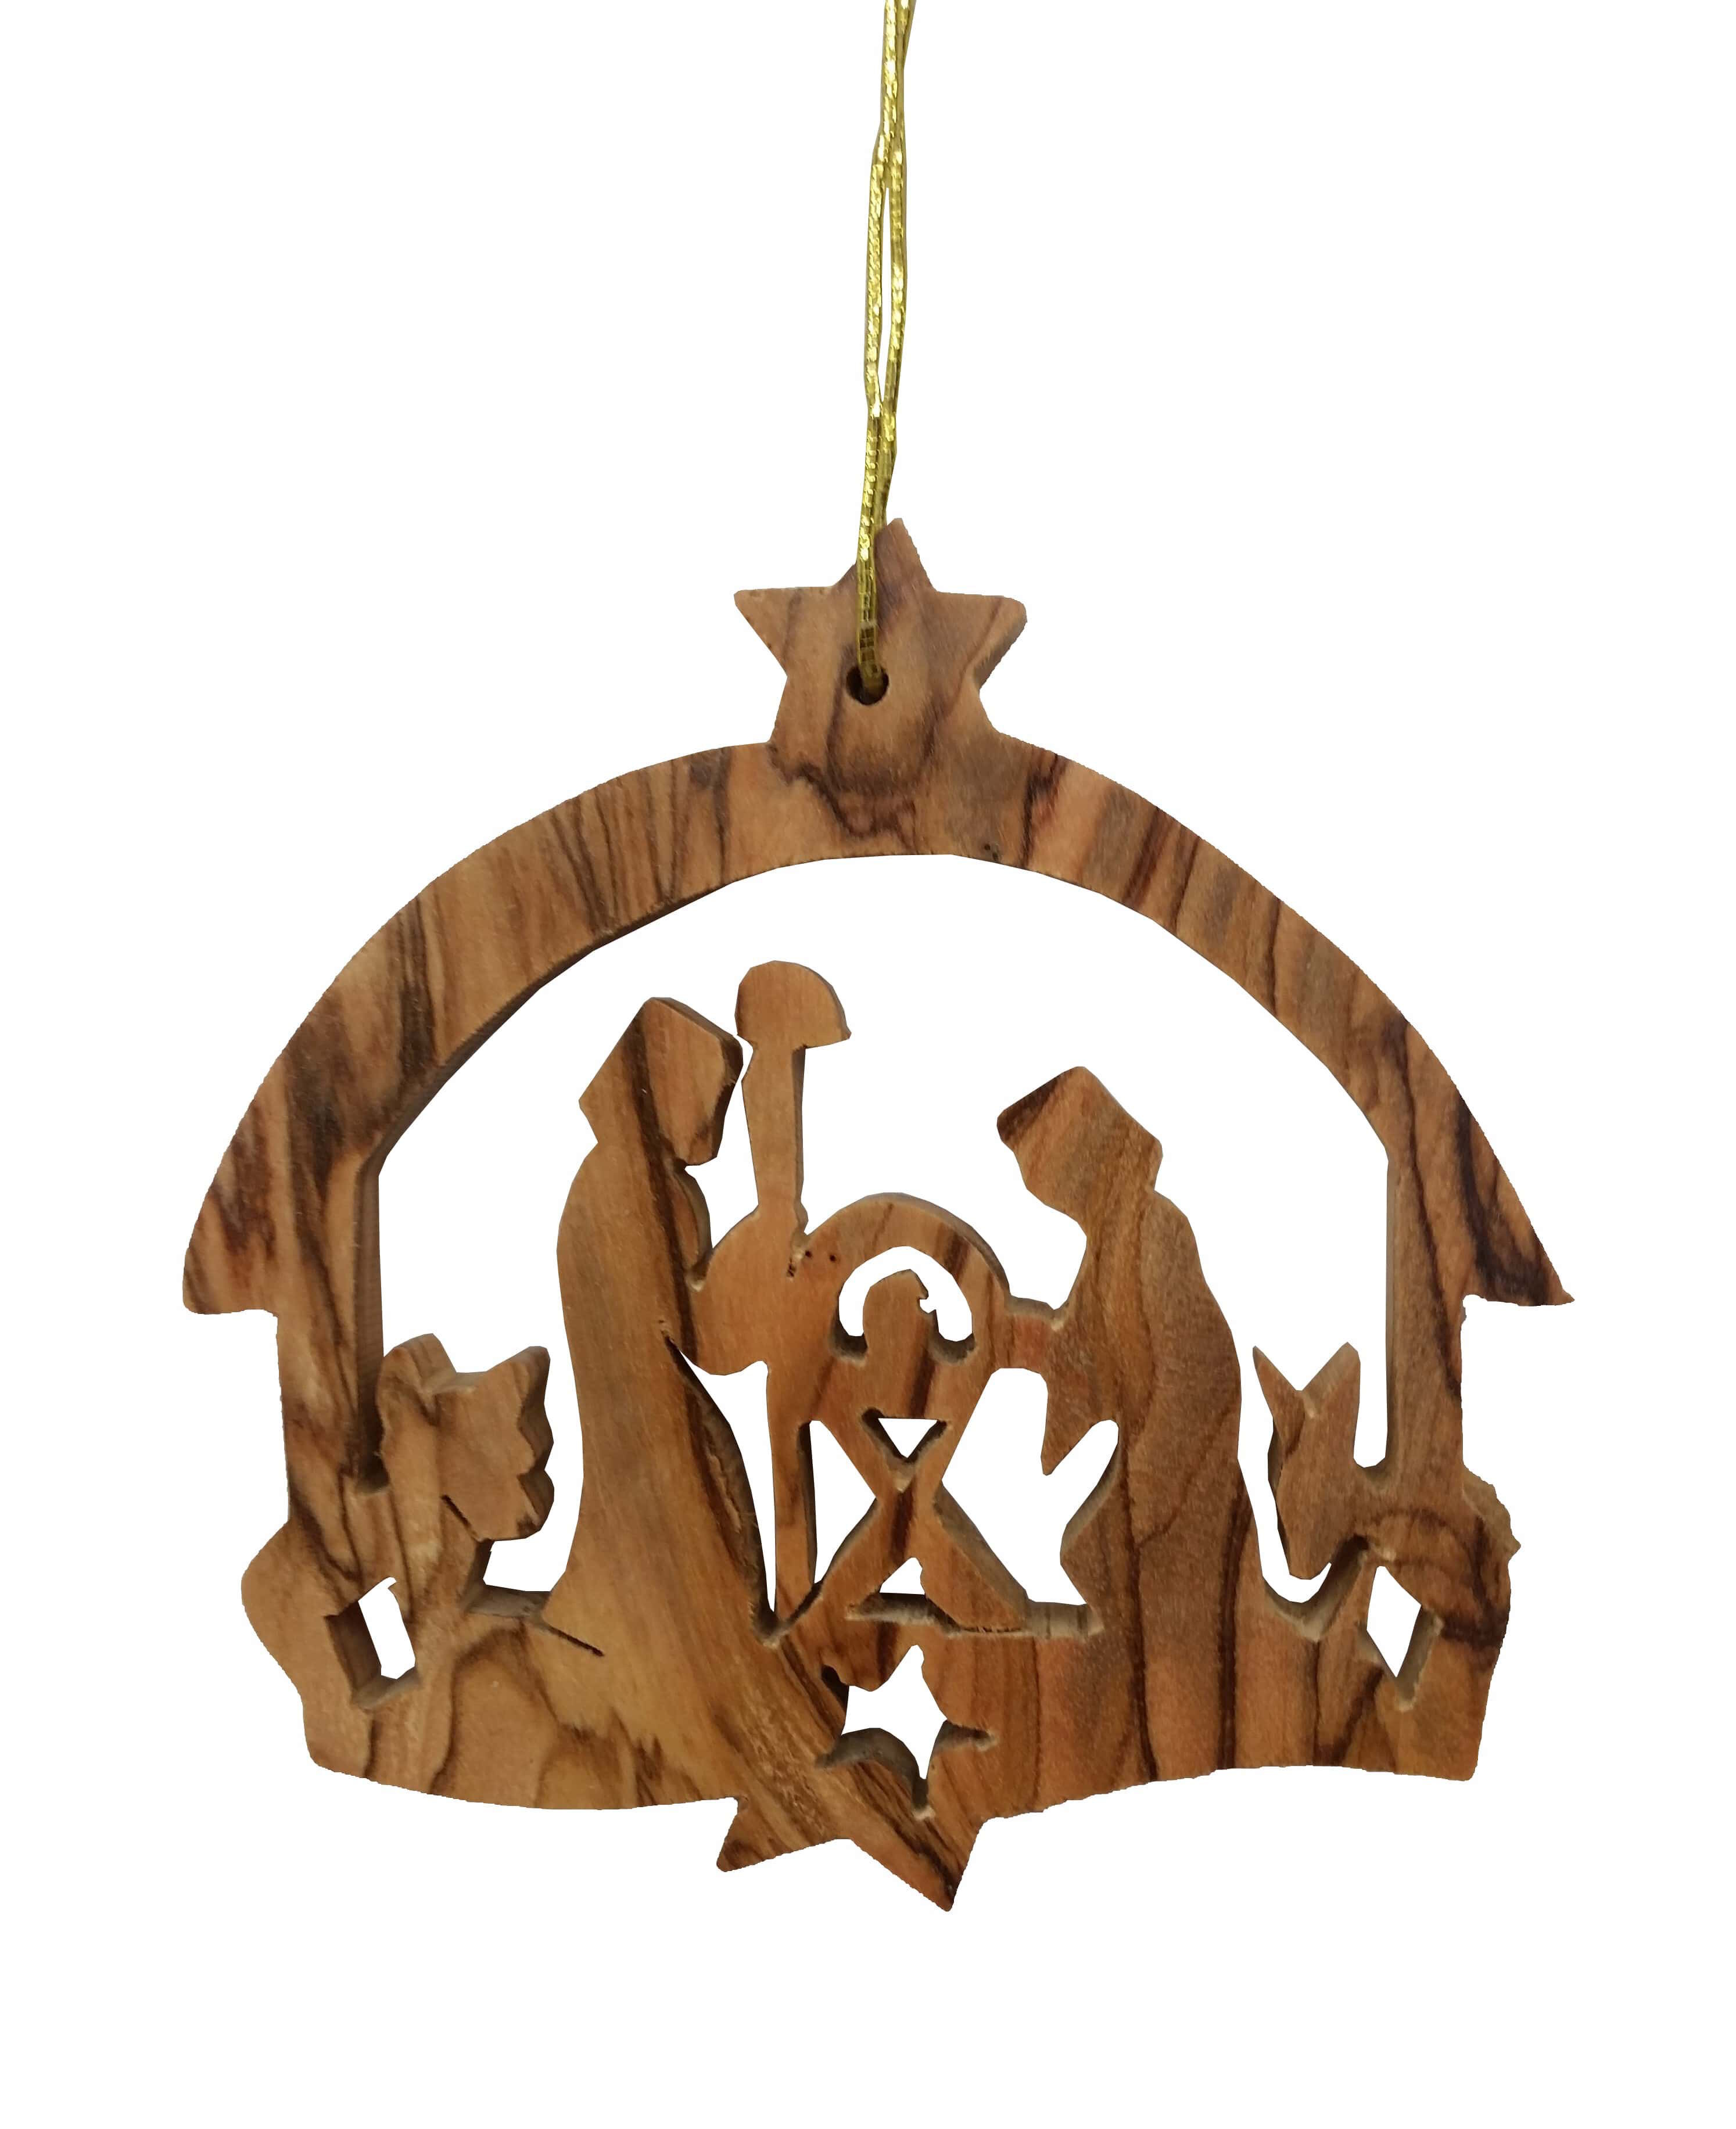 Earthwoodllc Olive Wood Nativity With Round Roof Ornament Wayfair